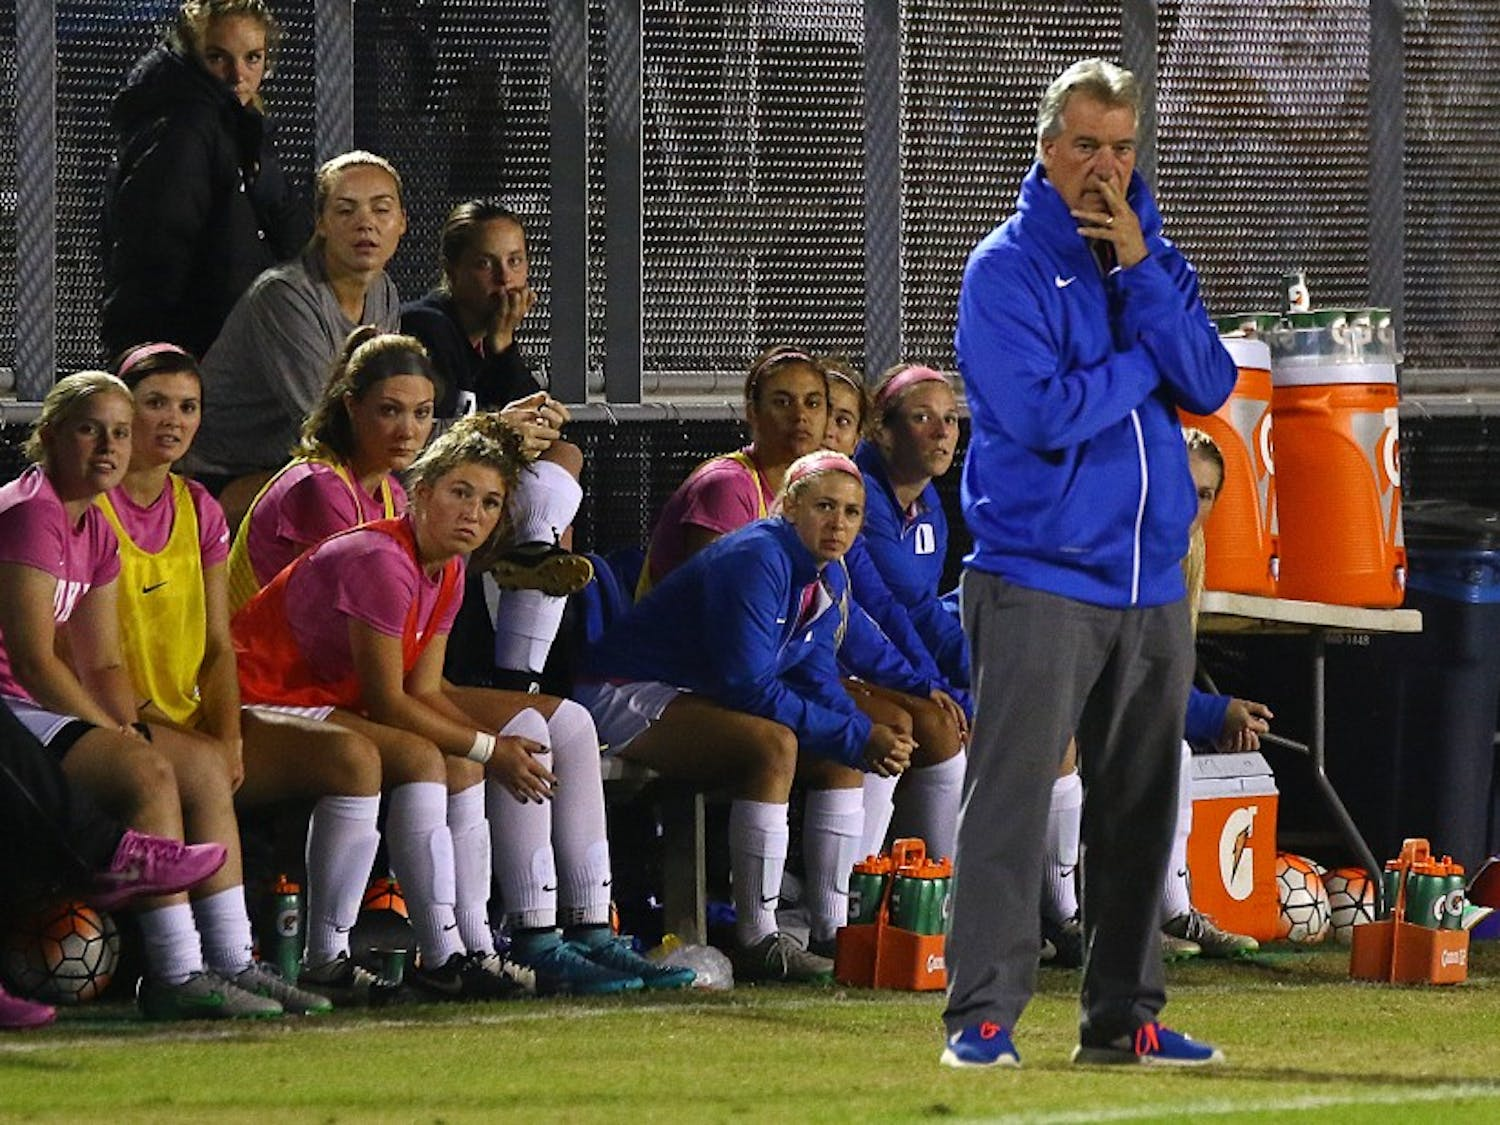 Women's soccer beat writer Jesús Hidalgo followed the Blue Devils on a season of redemption that ended with a 1-0 loss to Penn State in the national championship game.